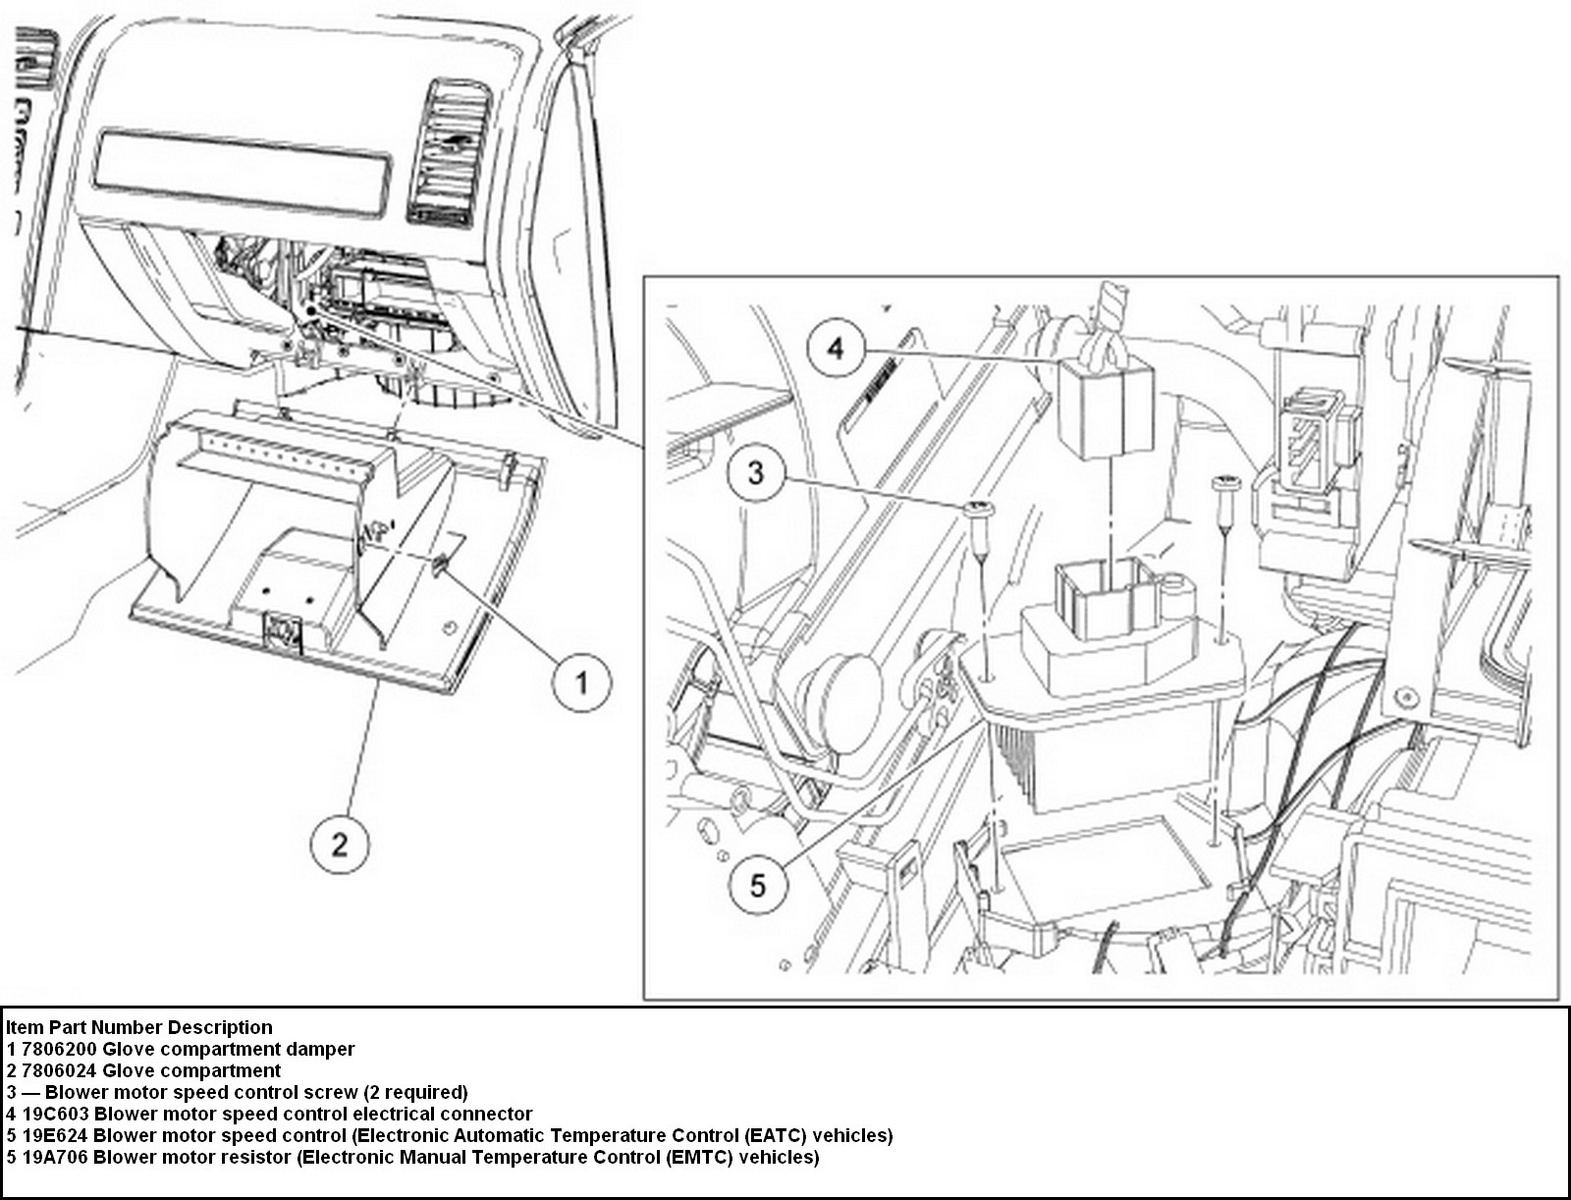 2014 Nissan Rogue Awd Fuse Box Download Wiring Diagrams Ford Edge Questions How Do You Remove And Replace Rouge